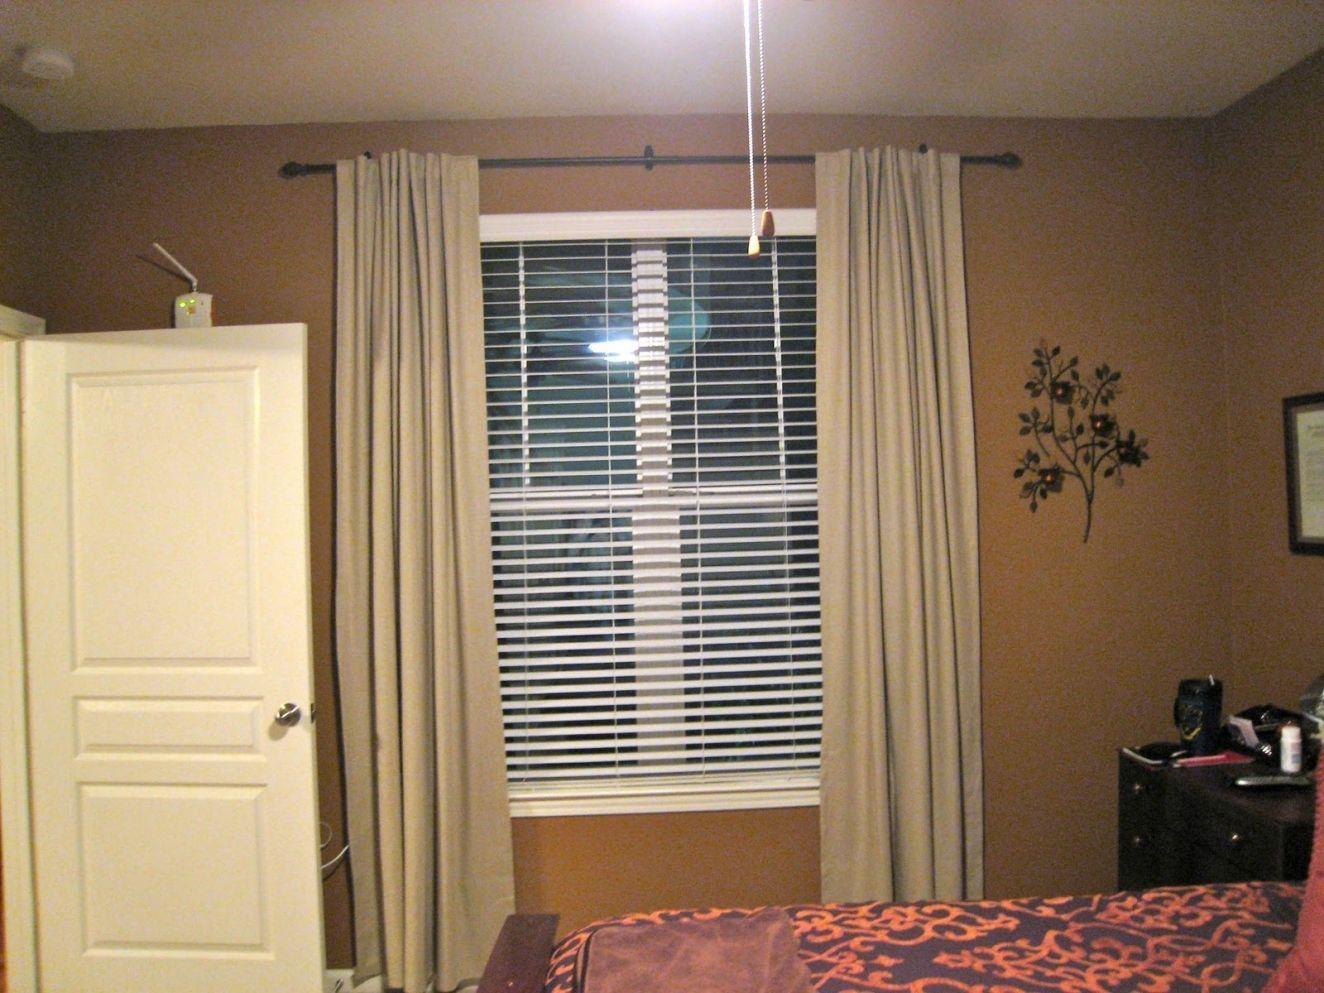 Window coverings over blinds  curtains for small windows in bedroom  interior design small